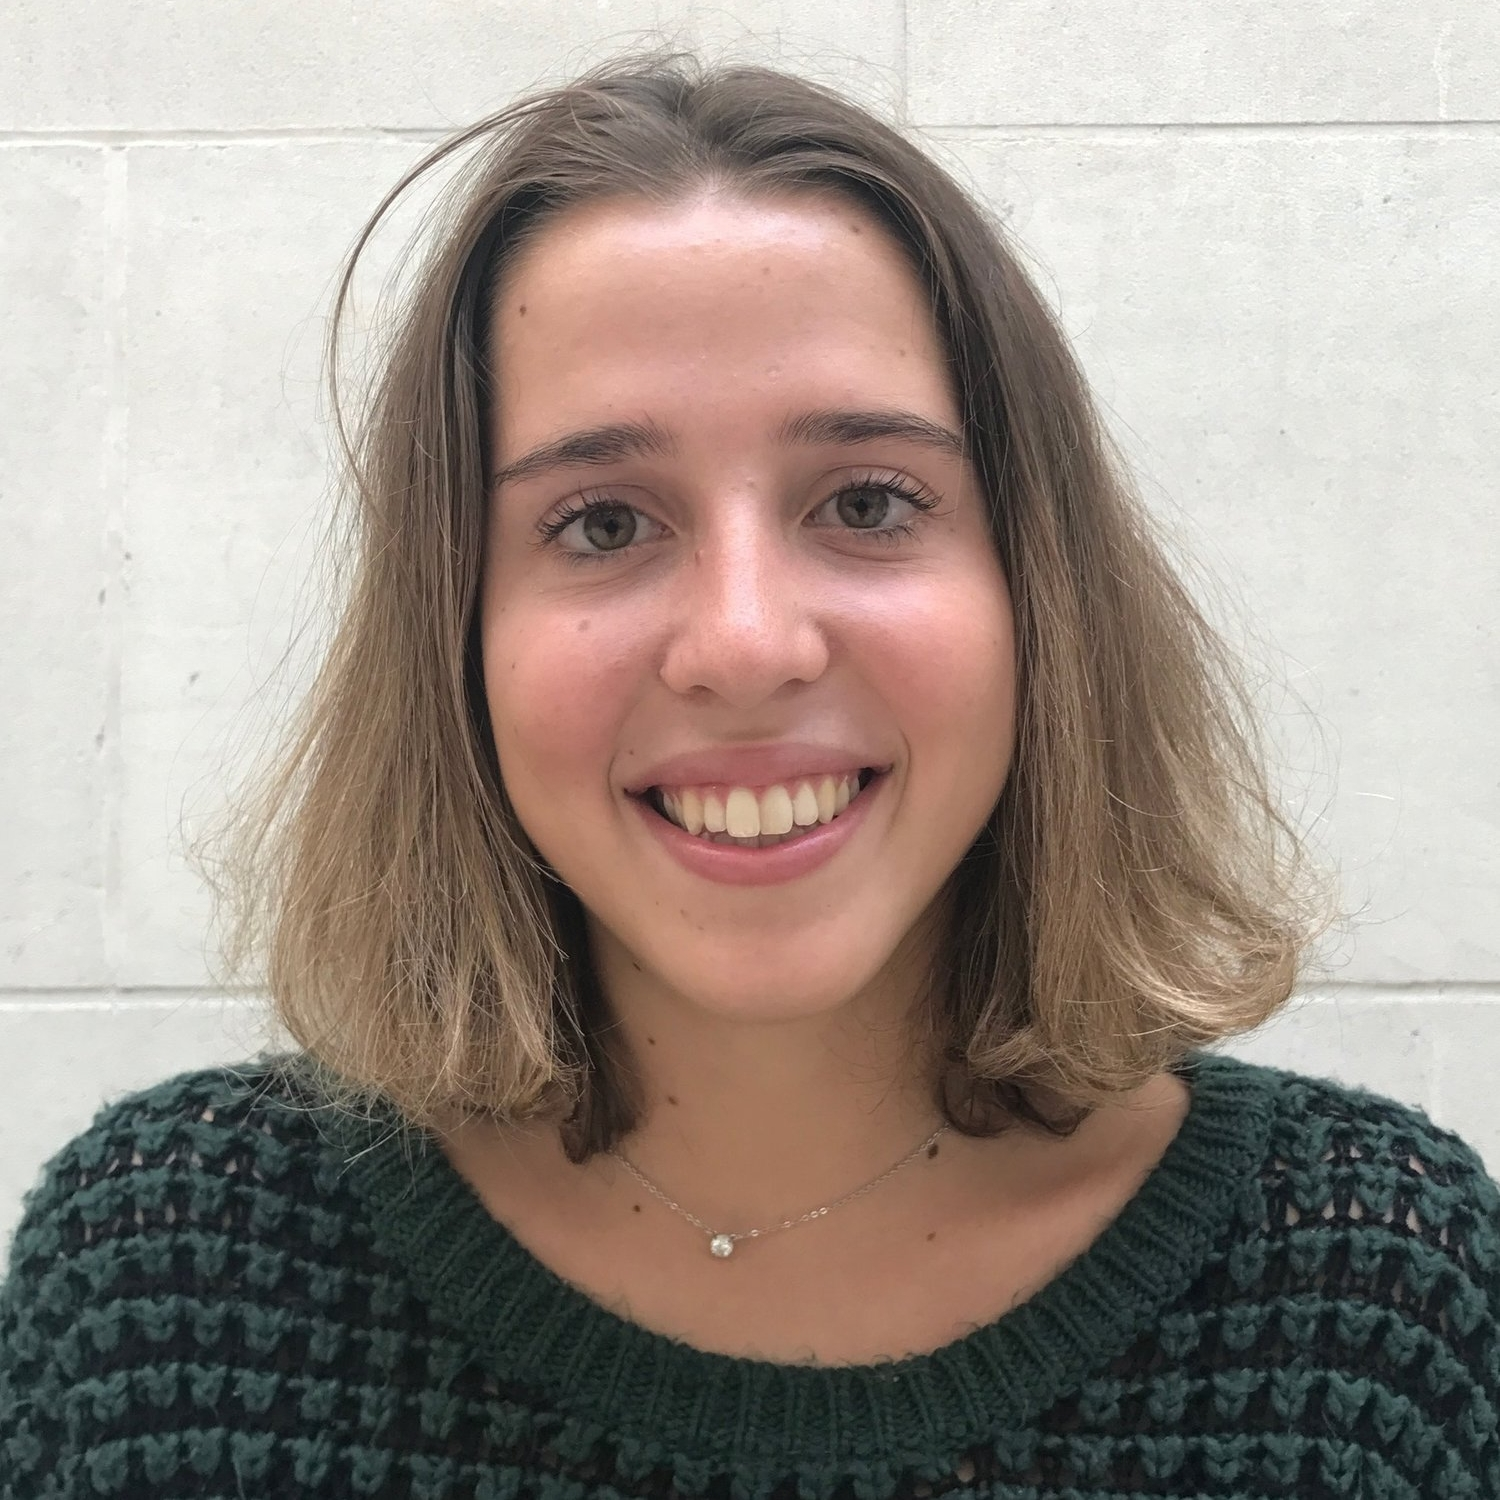 SECRETARY - LUDOVICA VECCHIO - I am a second-year LLB student. As Secretary of the Law Society, I keep all students updated regarding events, opportunities and meetings our Society will be organising; in addition to that, I manage the communication between our Committee members. I also deal with the Society's relationship with law firms and other potential partners.My experience as class representative for three consecutive years while in High School will serve as reference for my reliability. Such experience indeed allowed me to develop a strong sense of fairness as well as strong organising skills. For instance, I had to keep track of all the meetings and students' needs throughout the school-year.I have a passion for singing as I have been performing with a choir for most of my life.I am marked by a sympathetic personality and I am generally willing to meet new people. Thus, I cannot wait to engage with all the members of our Society.